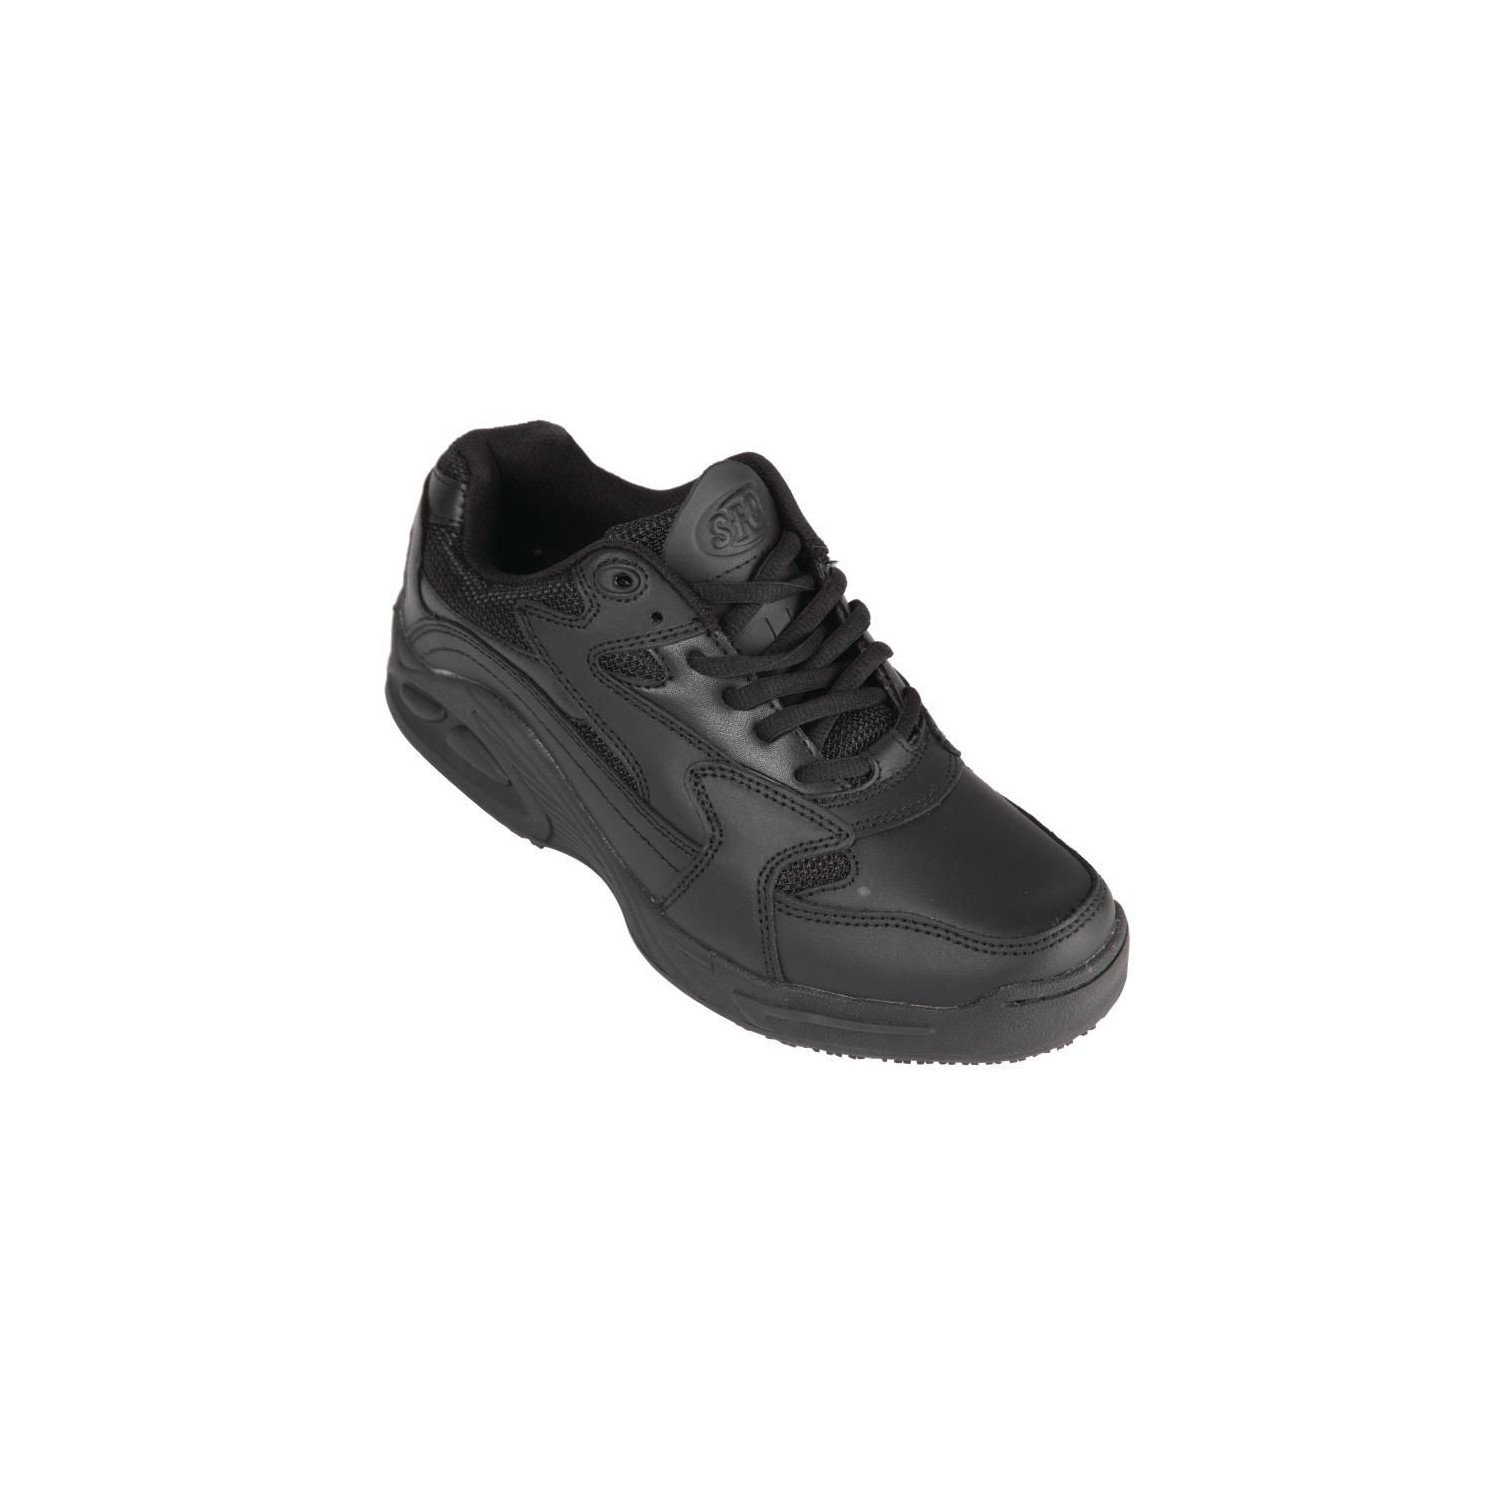 Shoes For Crews Ladies Stay Grounded Leather Trainer - Size 40 SHOES FOR CREWS Nisbets Vêtements